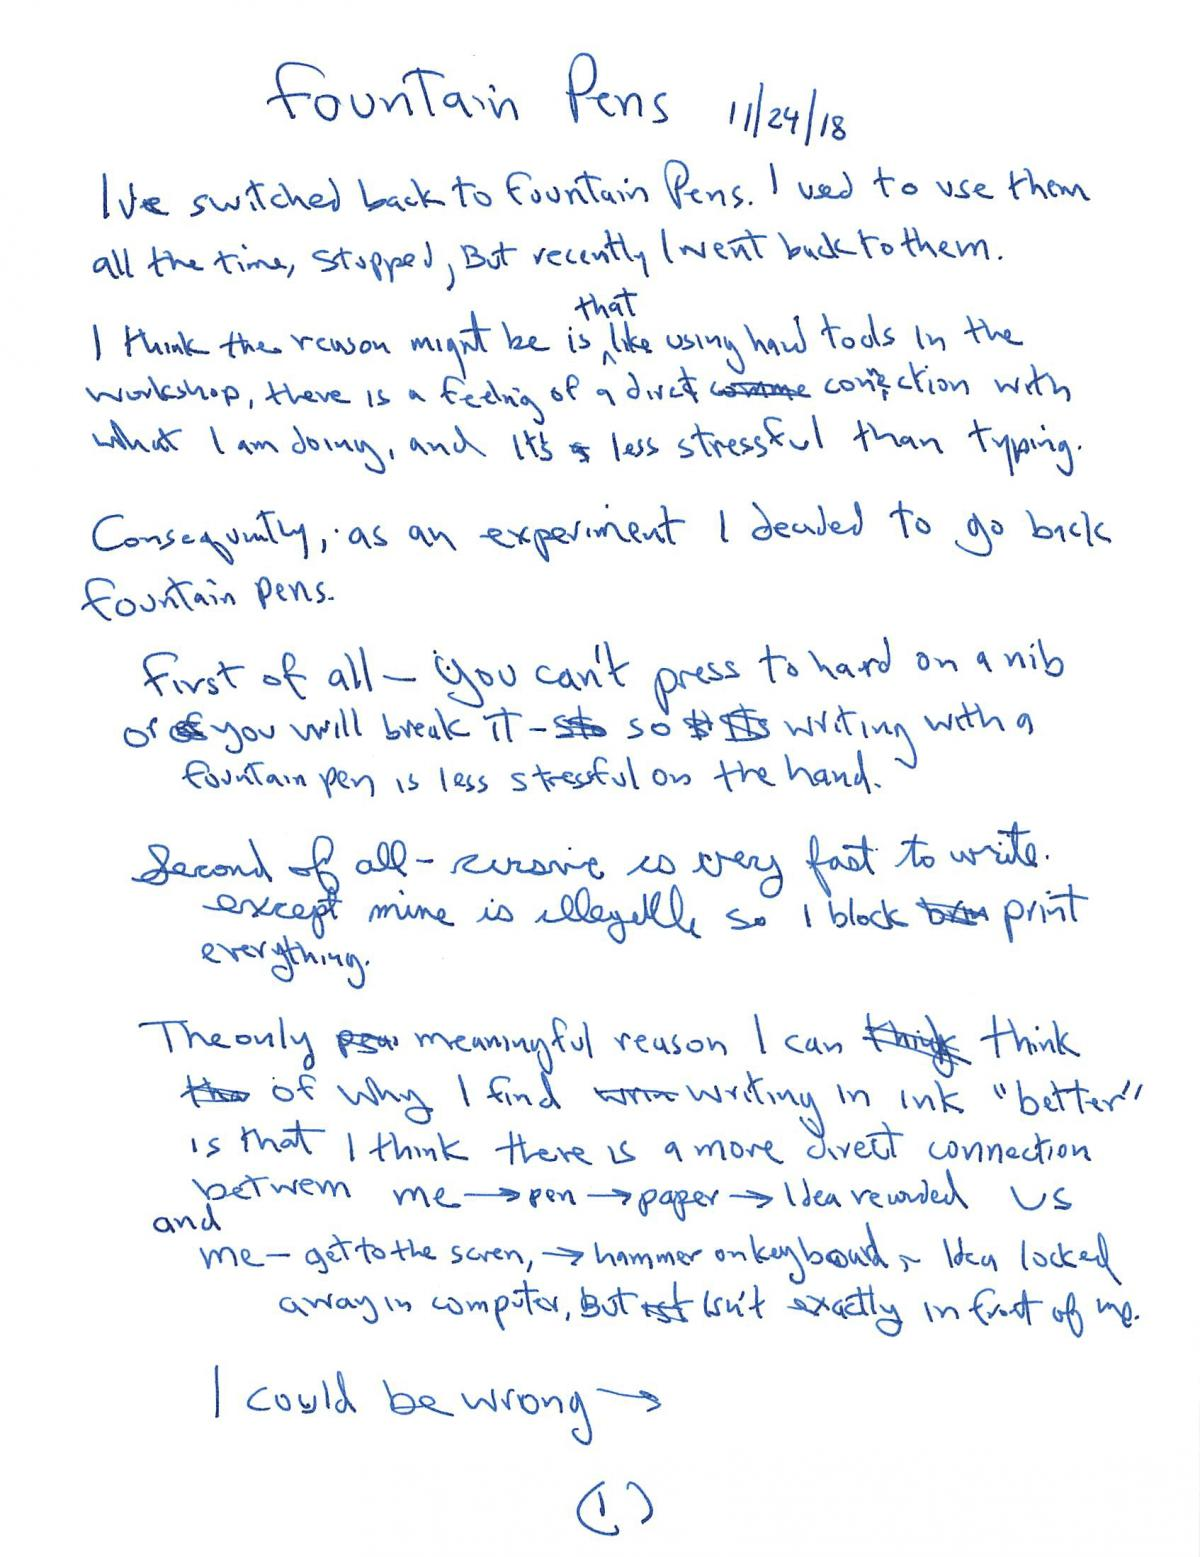 I Think Better on Paper - My Return to Fountain Pens 1